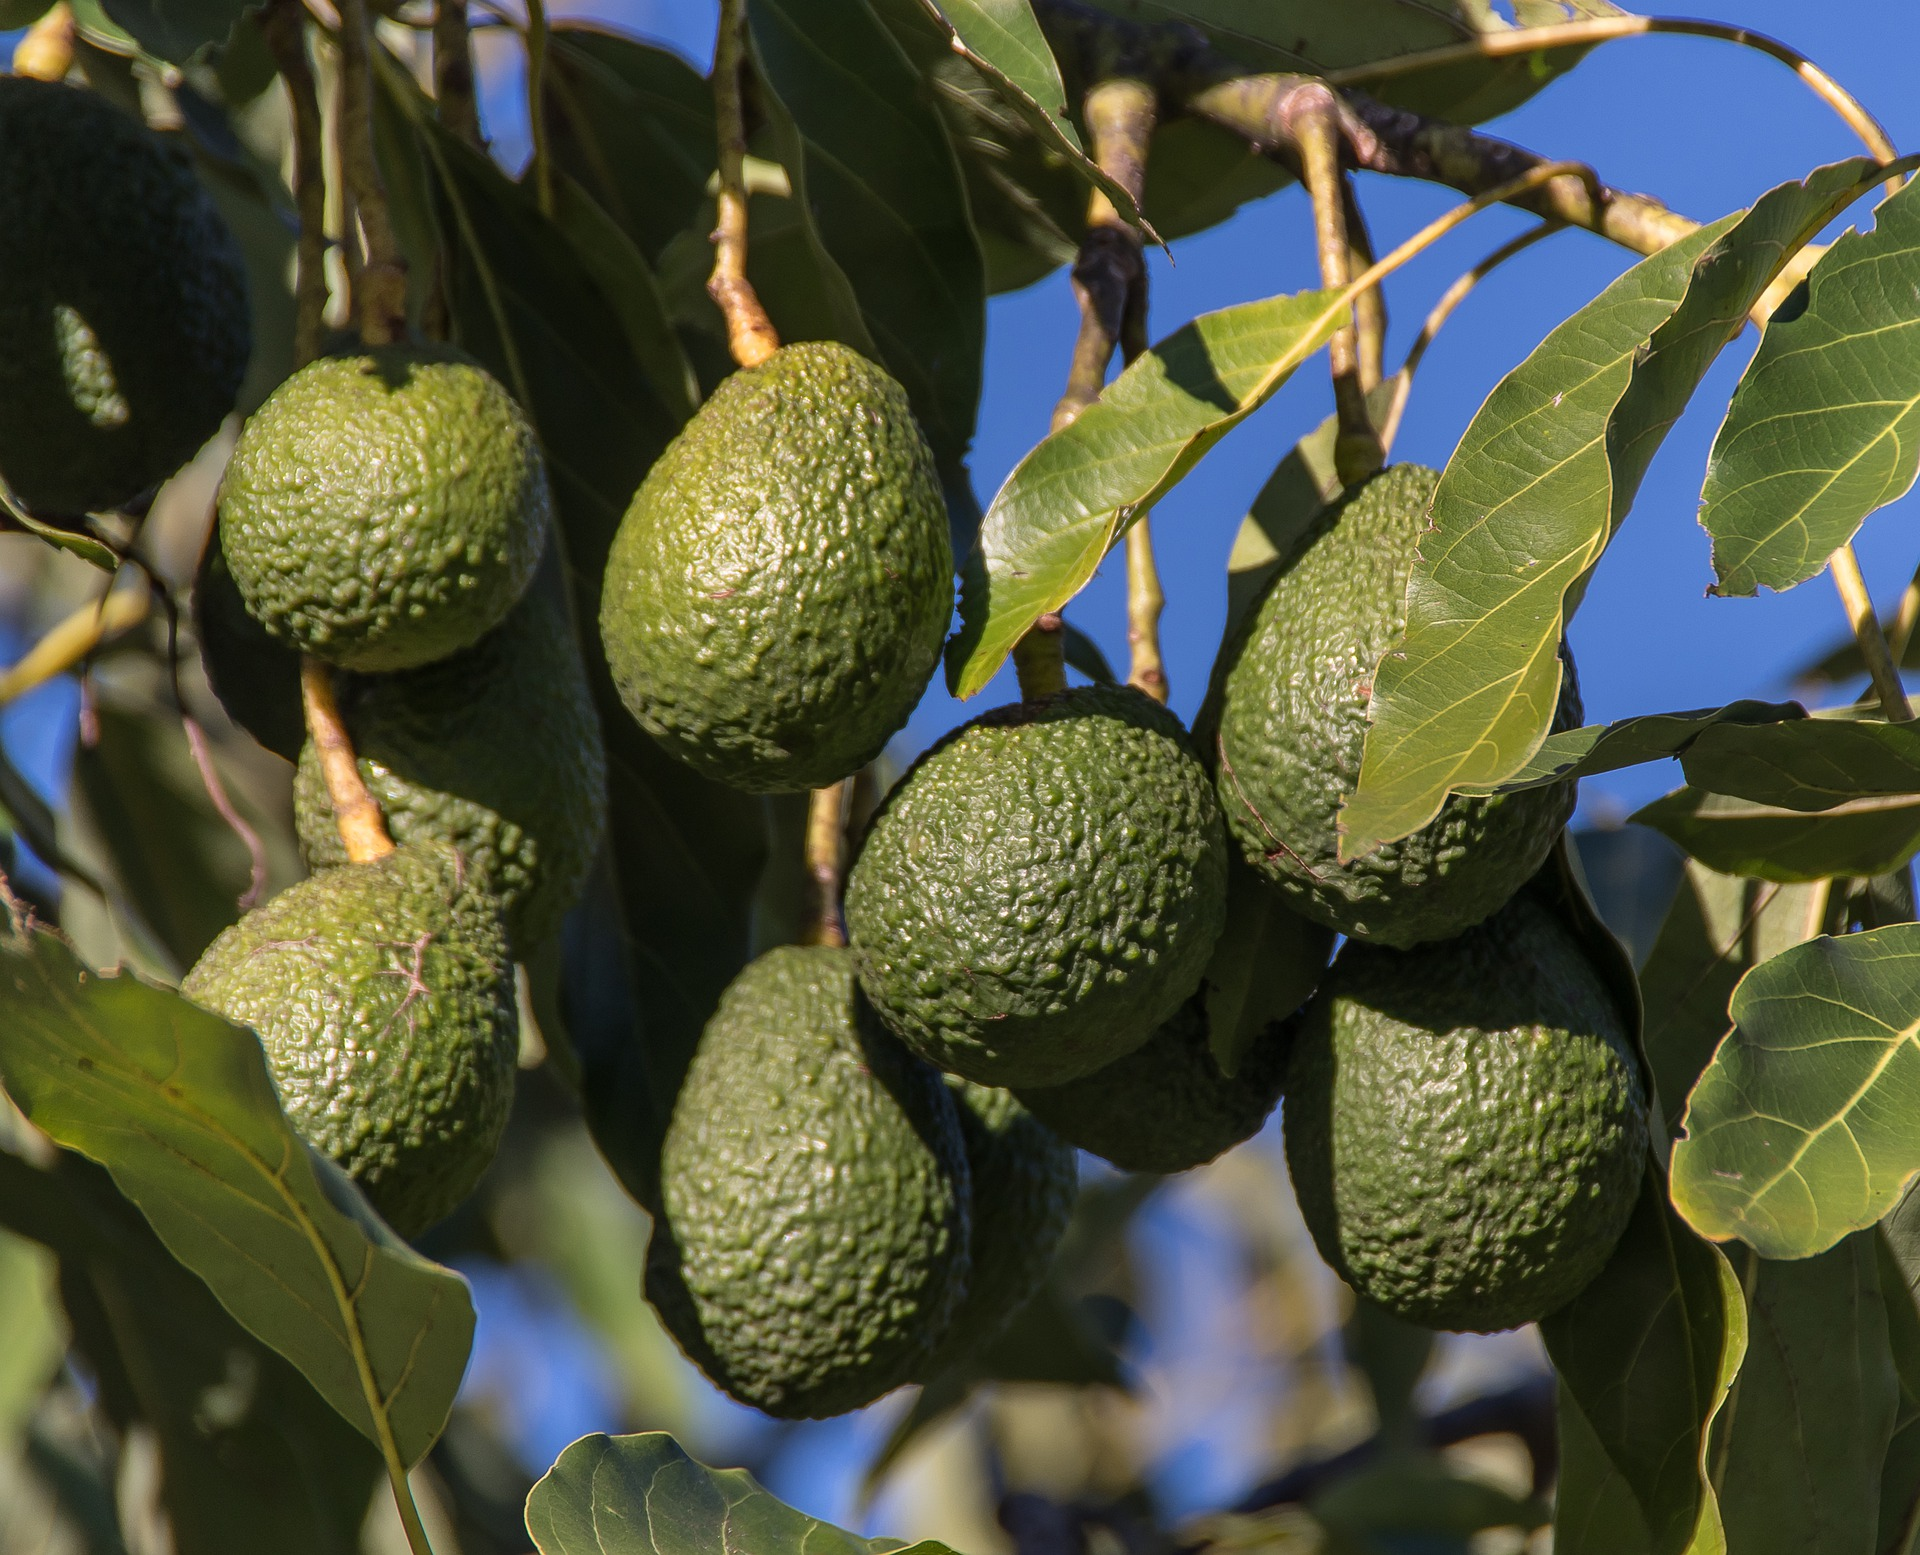 hass-avocados-4436393_1920